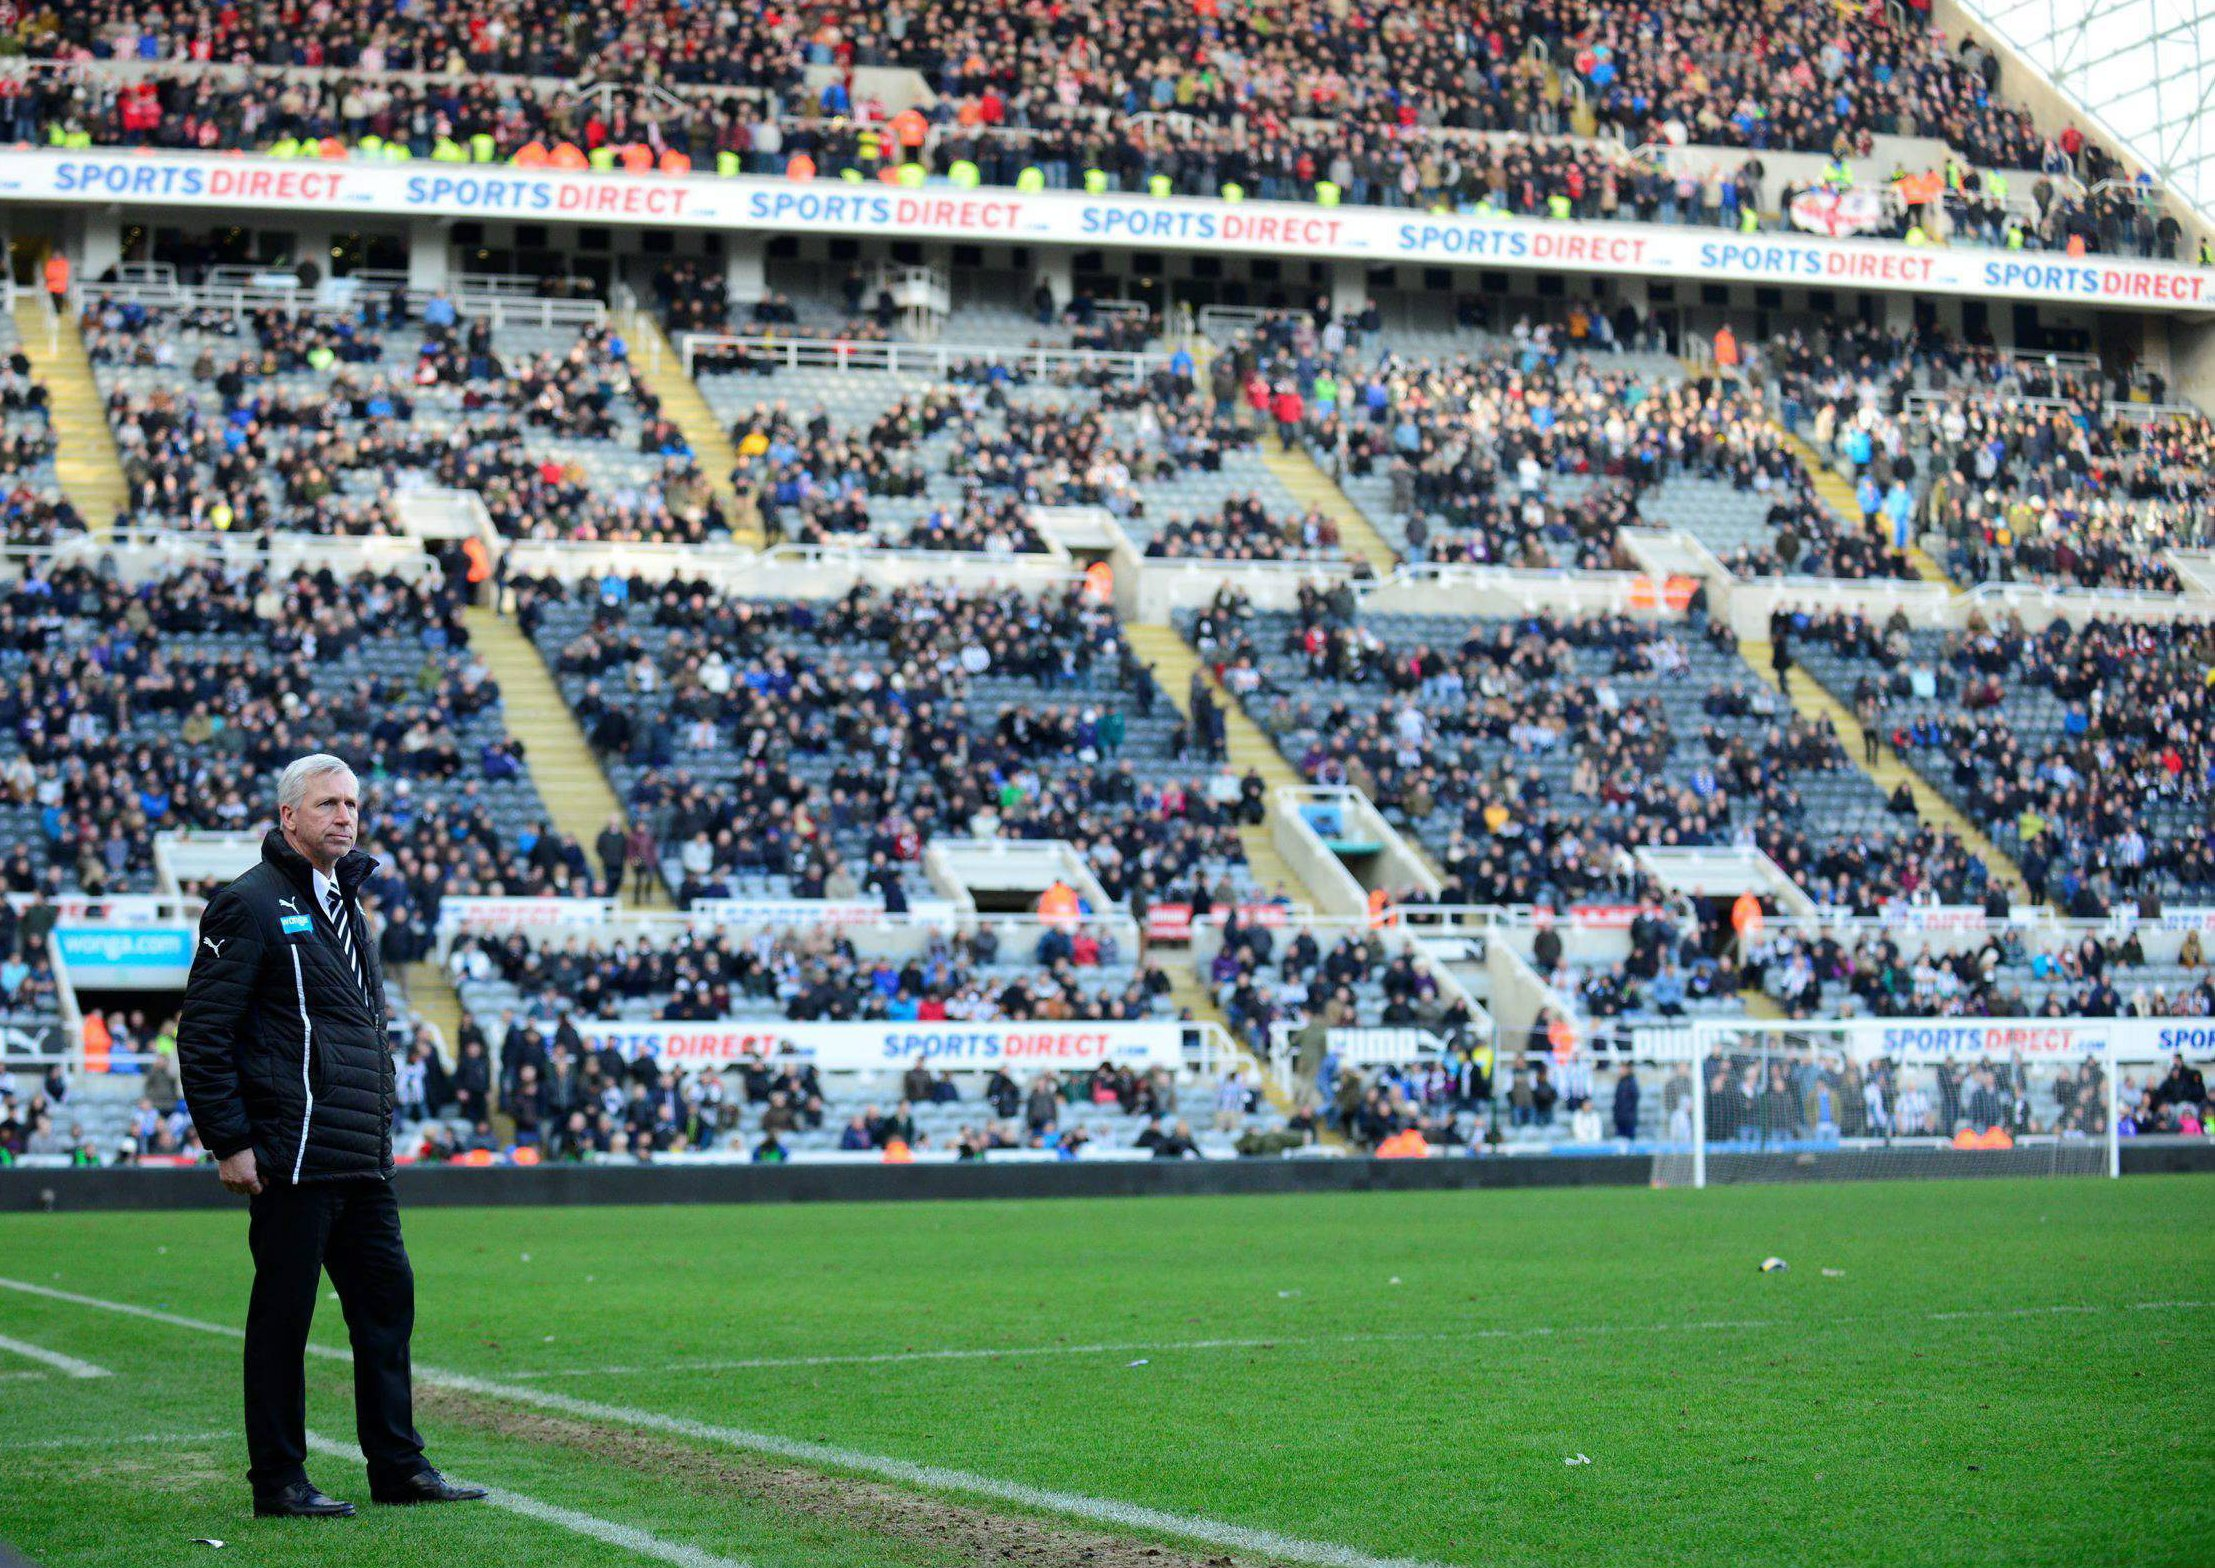 LONELY PLACE: Newcastle manager Alan Pardew watches amid a half full St James' Park after watching his side concede a third goal against Sunderland on Saturday